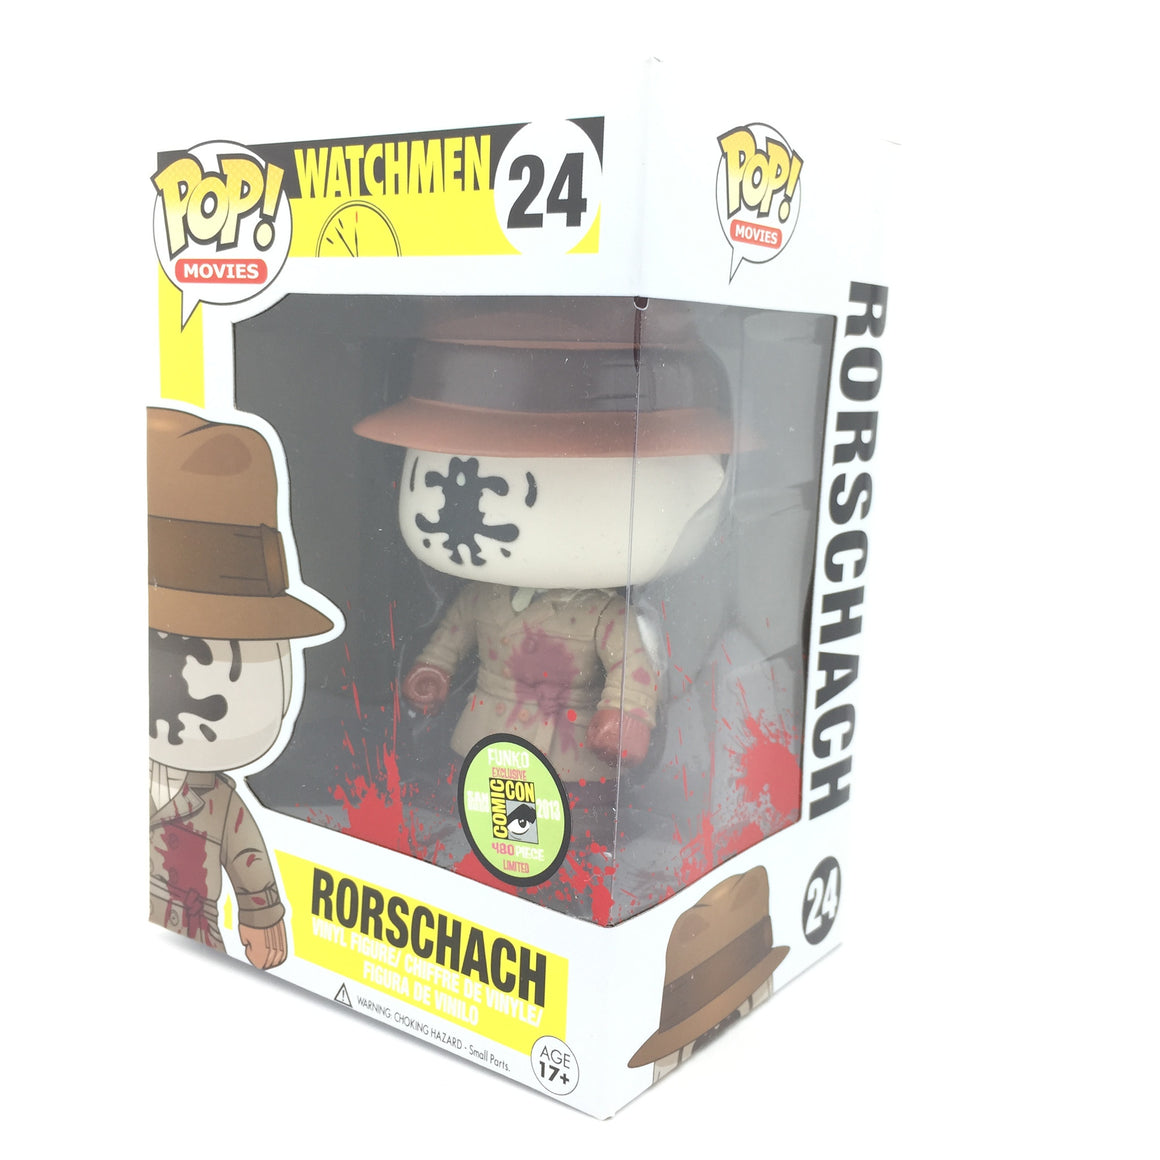 Bloody Rorschach Watchmen POP Vinyl Figure SDCC 2013 Exclusive Limited Edition by Funko